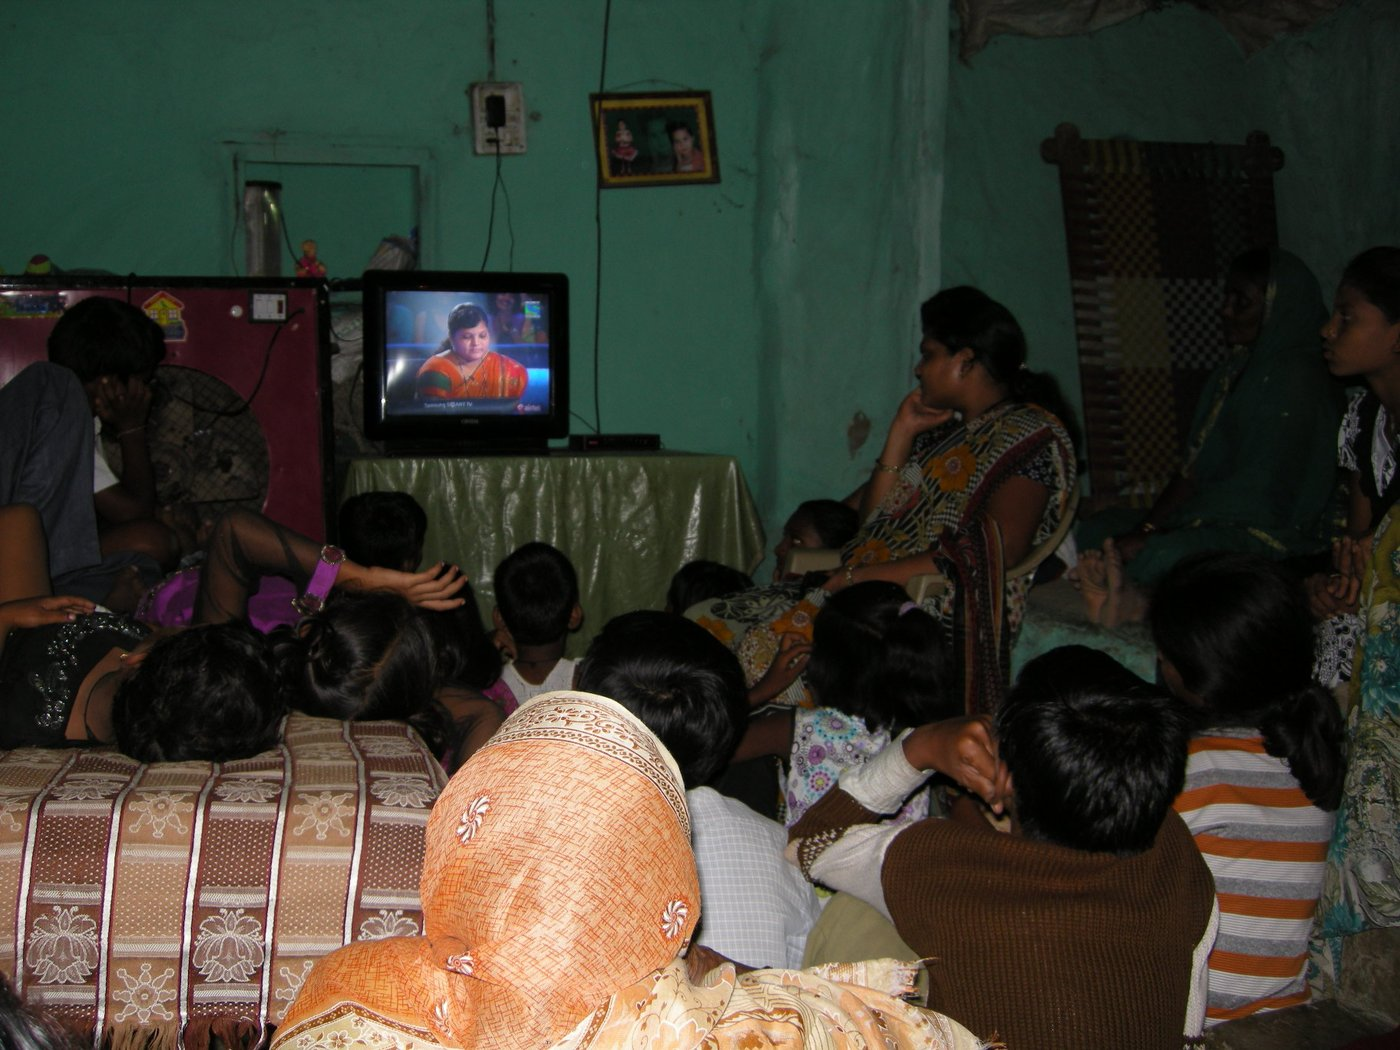 A group of people watching Kaun Banega Crorepati on television